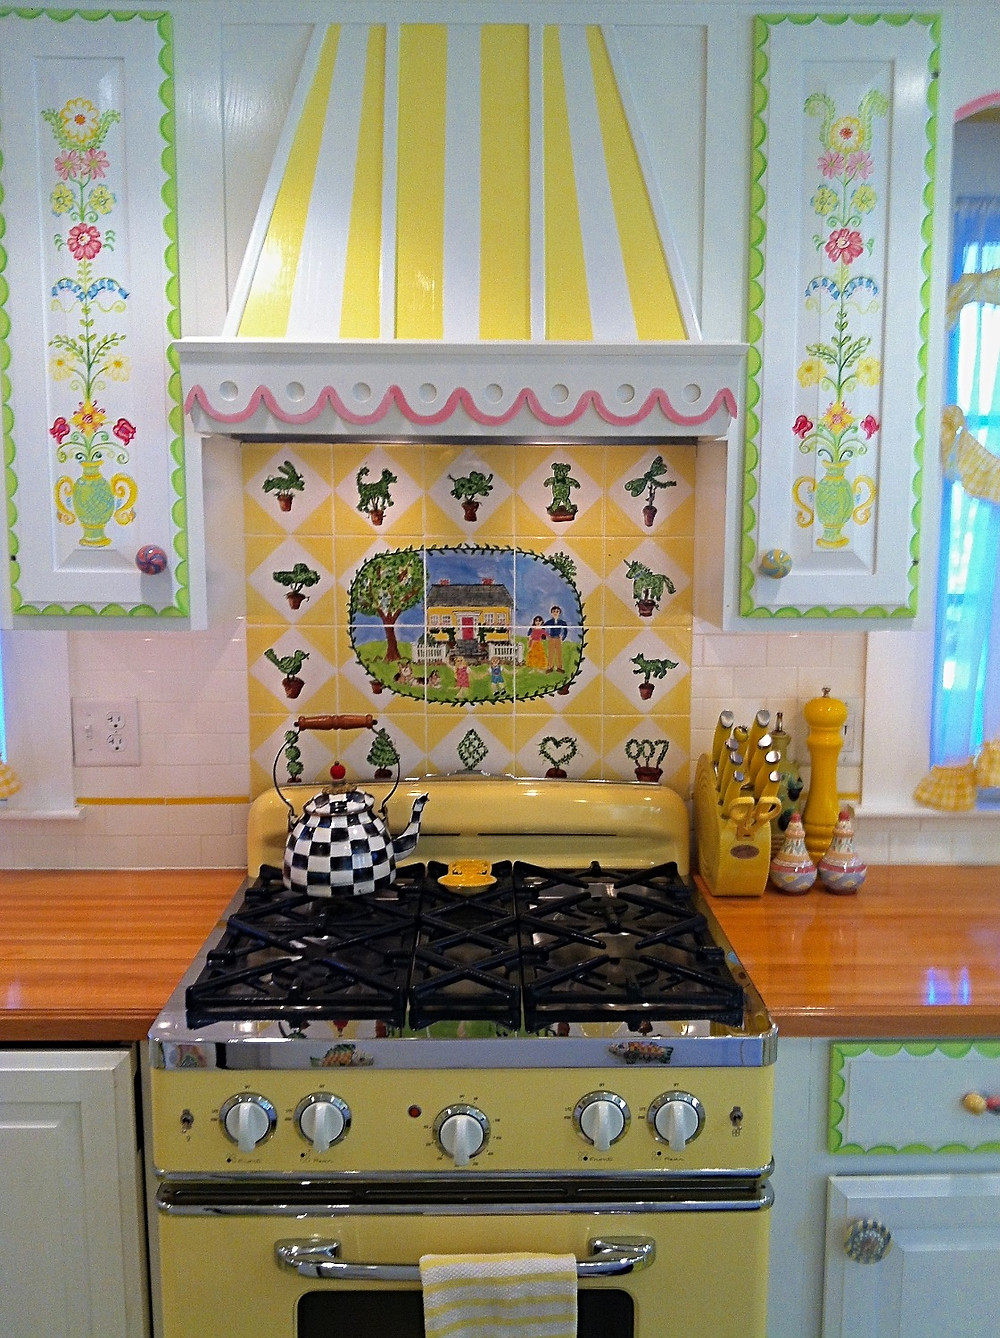 Hand painted Backsplash and cabinets